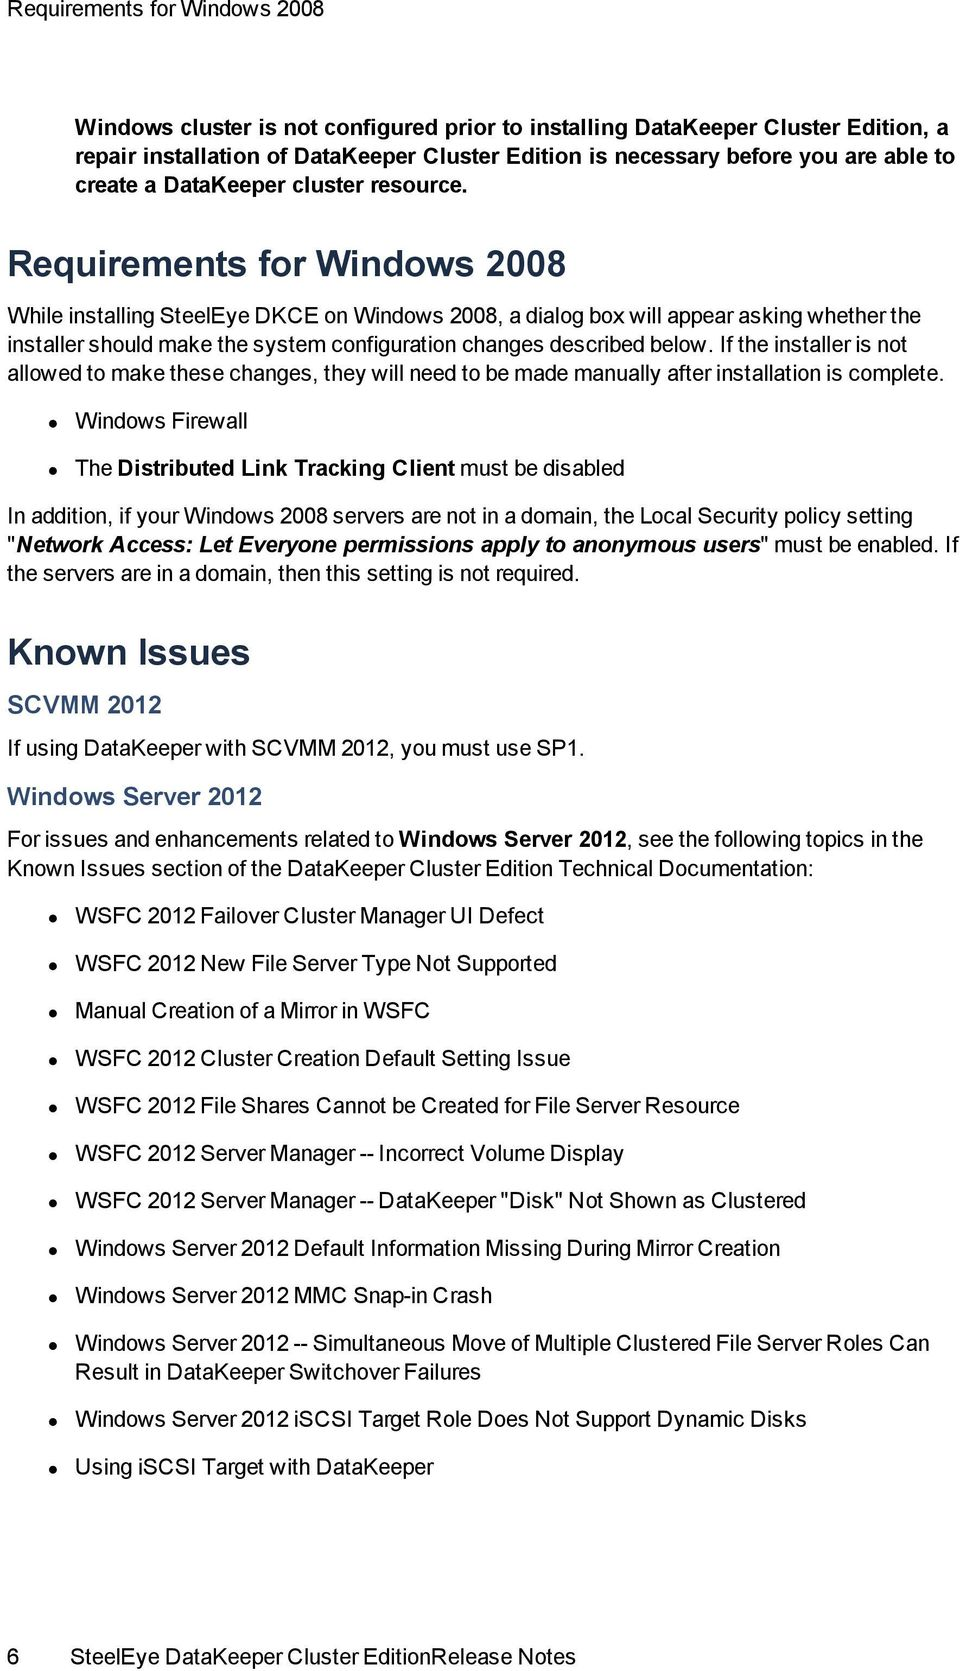 Requirements for Windows 2008 While installing SteelEye DKCE on Windows 2008, a dialog box will appear asking whether the installer should make the system configuration changes described below.